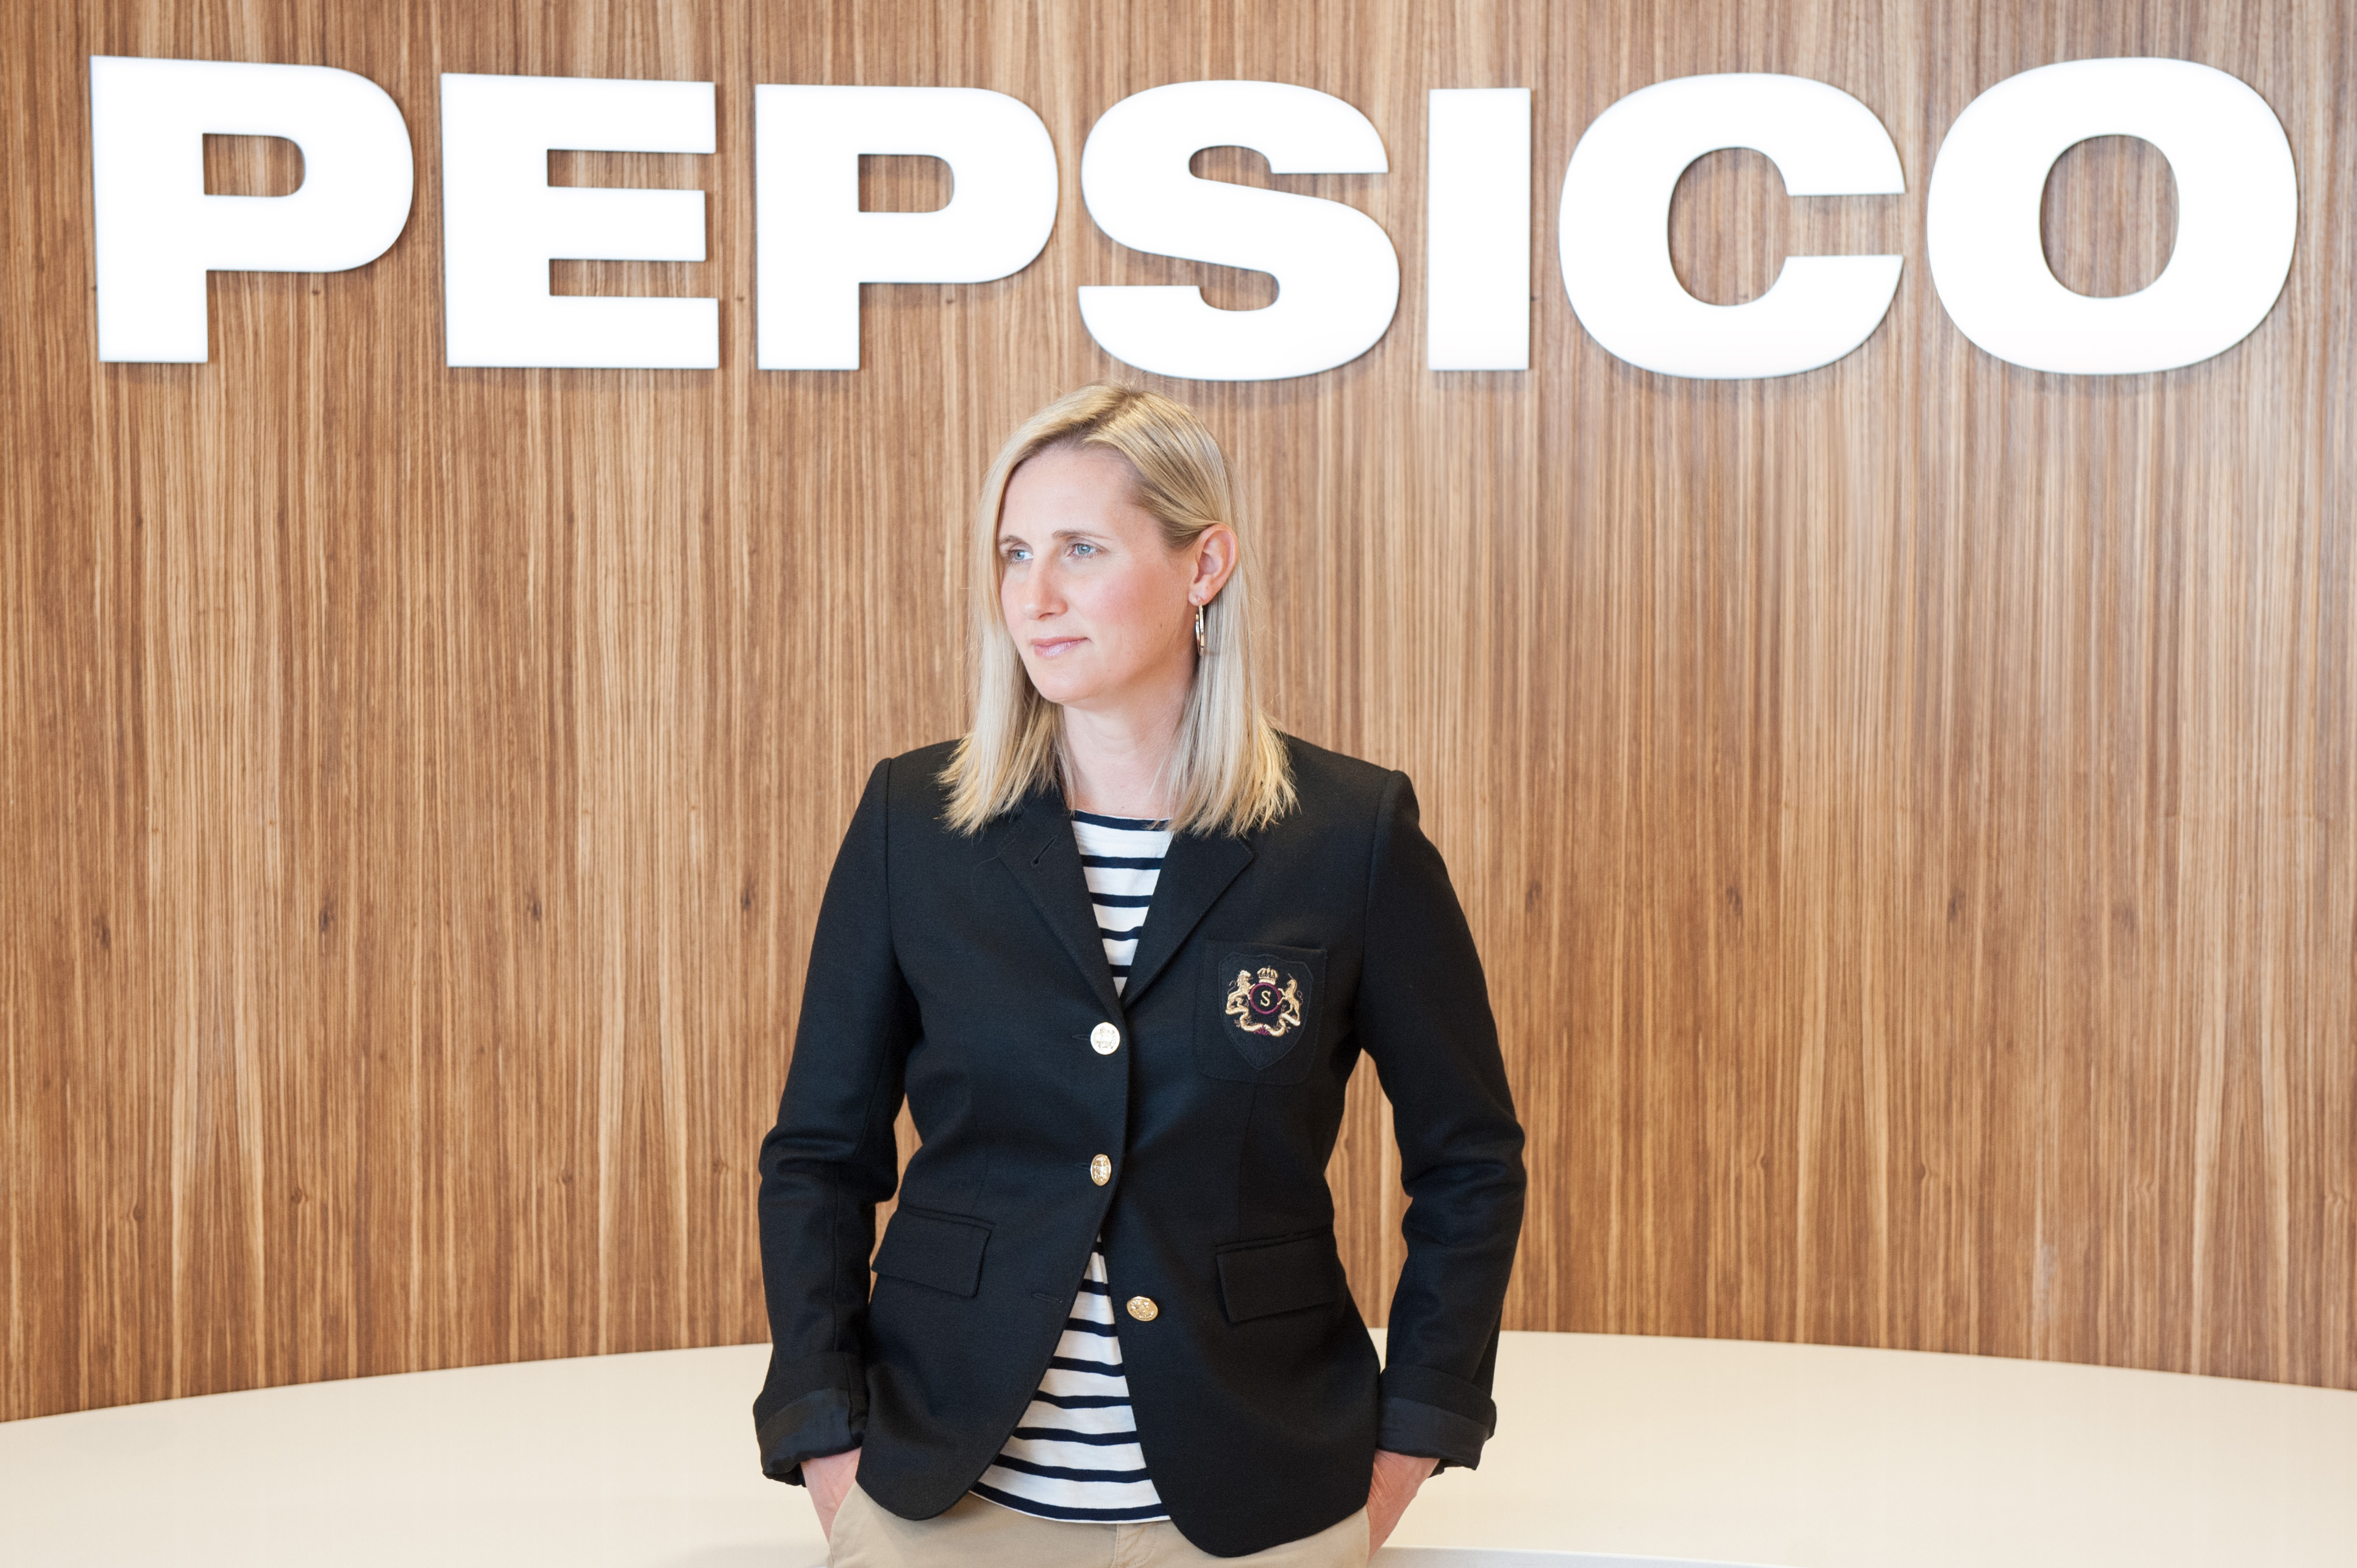 PepsiCo's Susan Irving takes global role » strategy